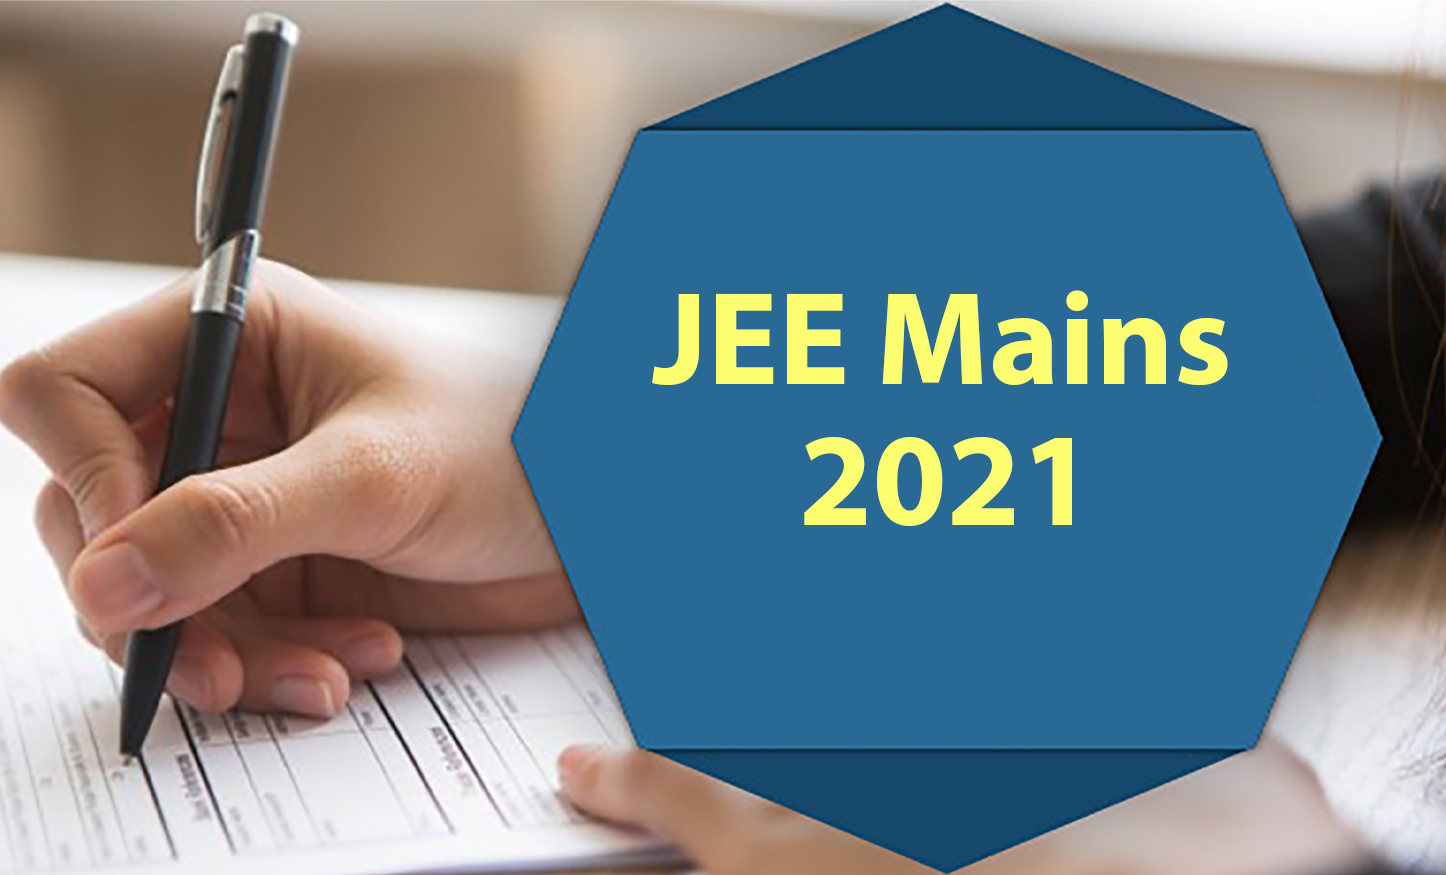 JEE Mains | For Admission in NITs